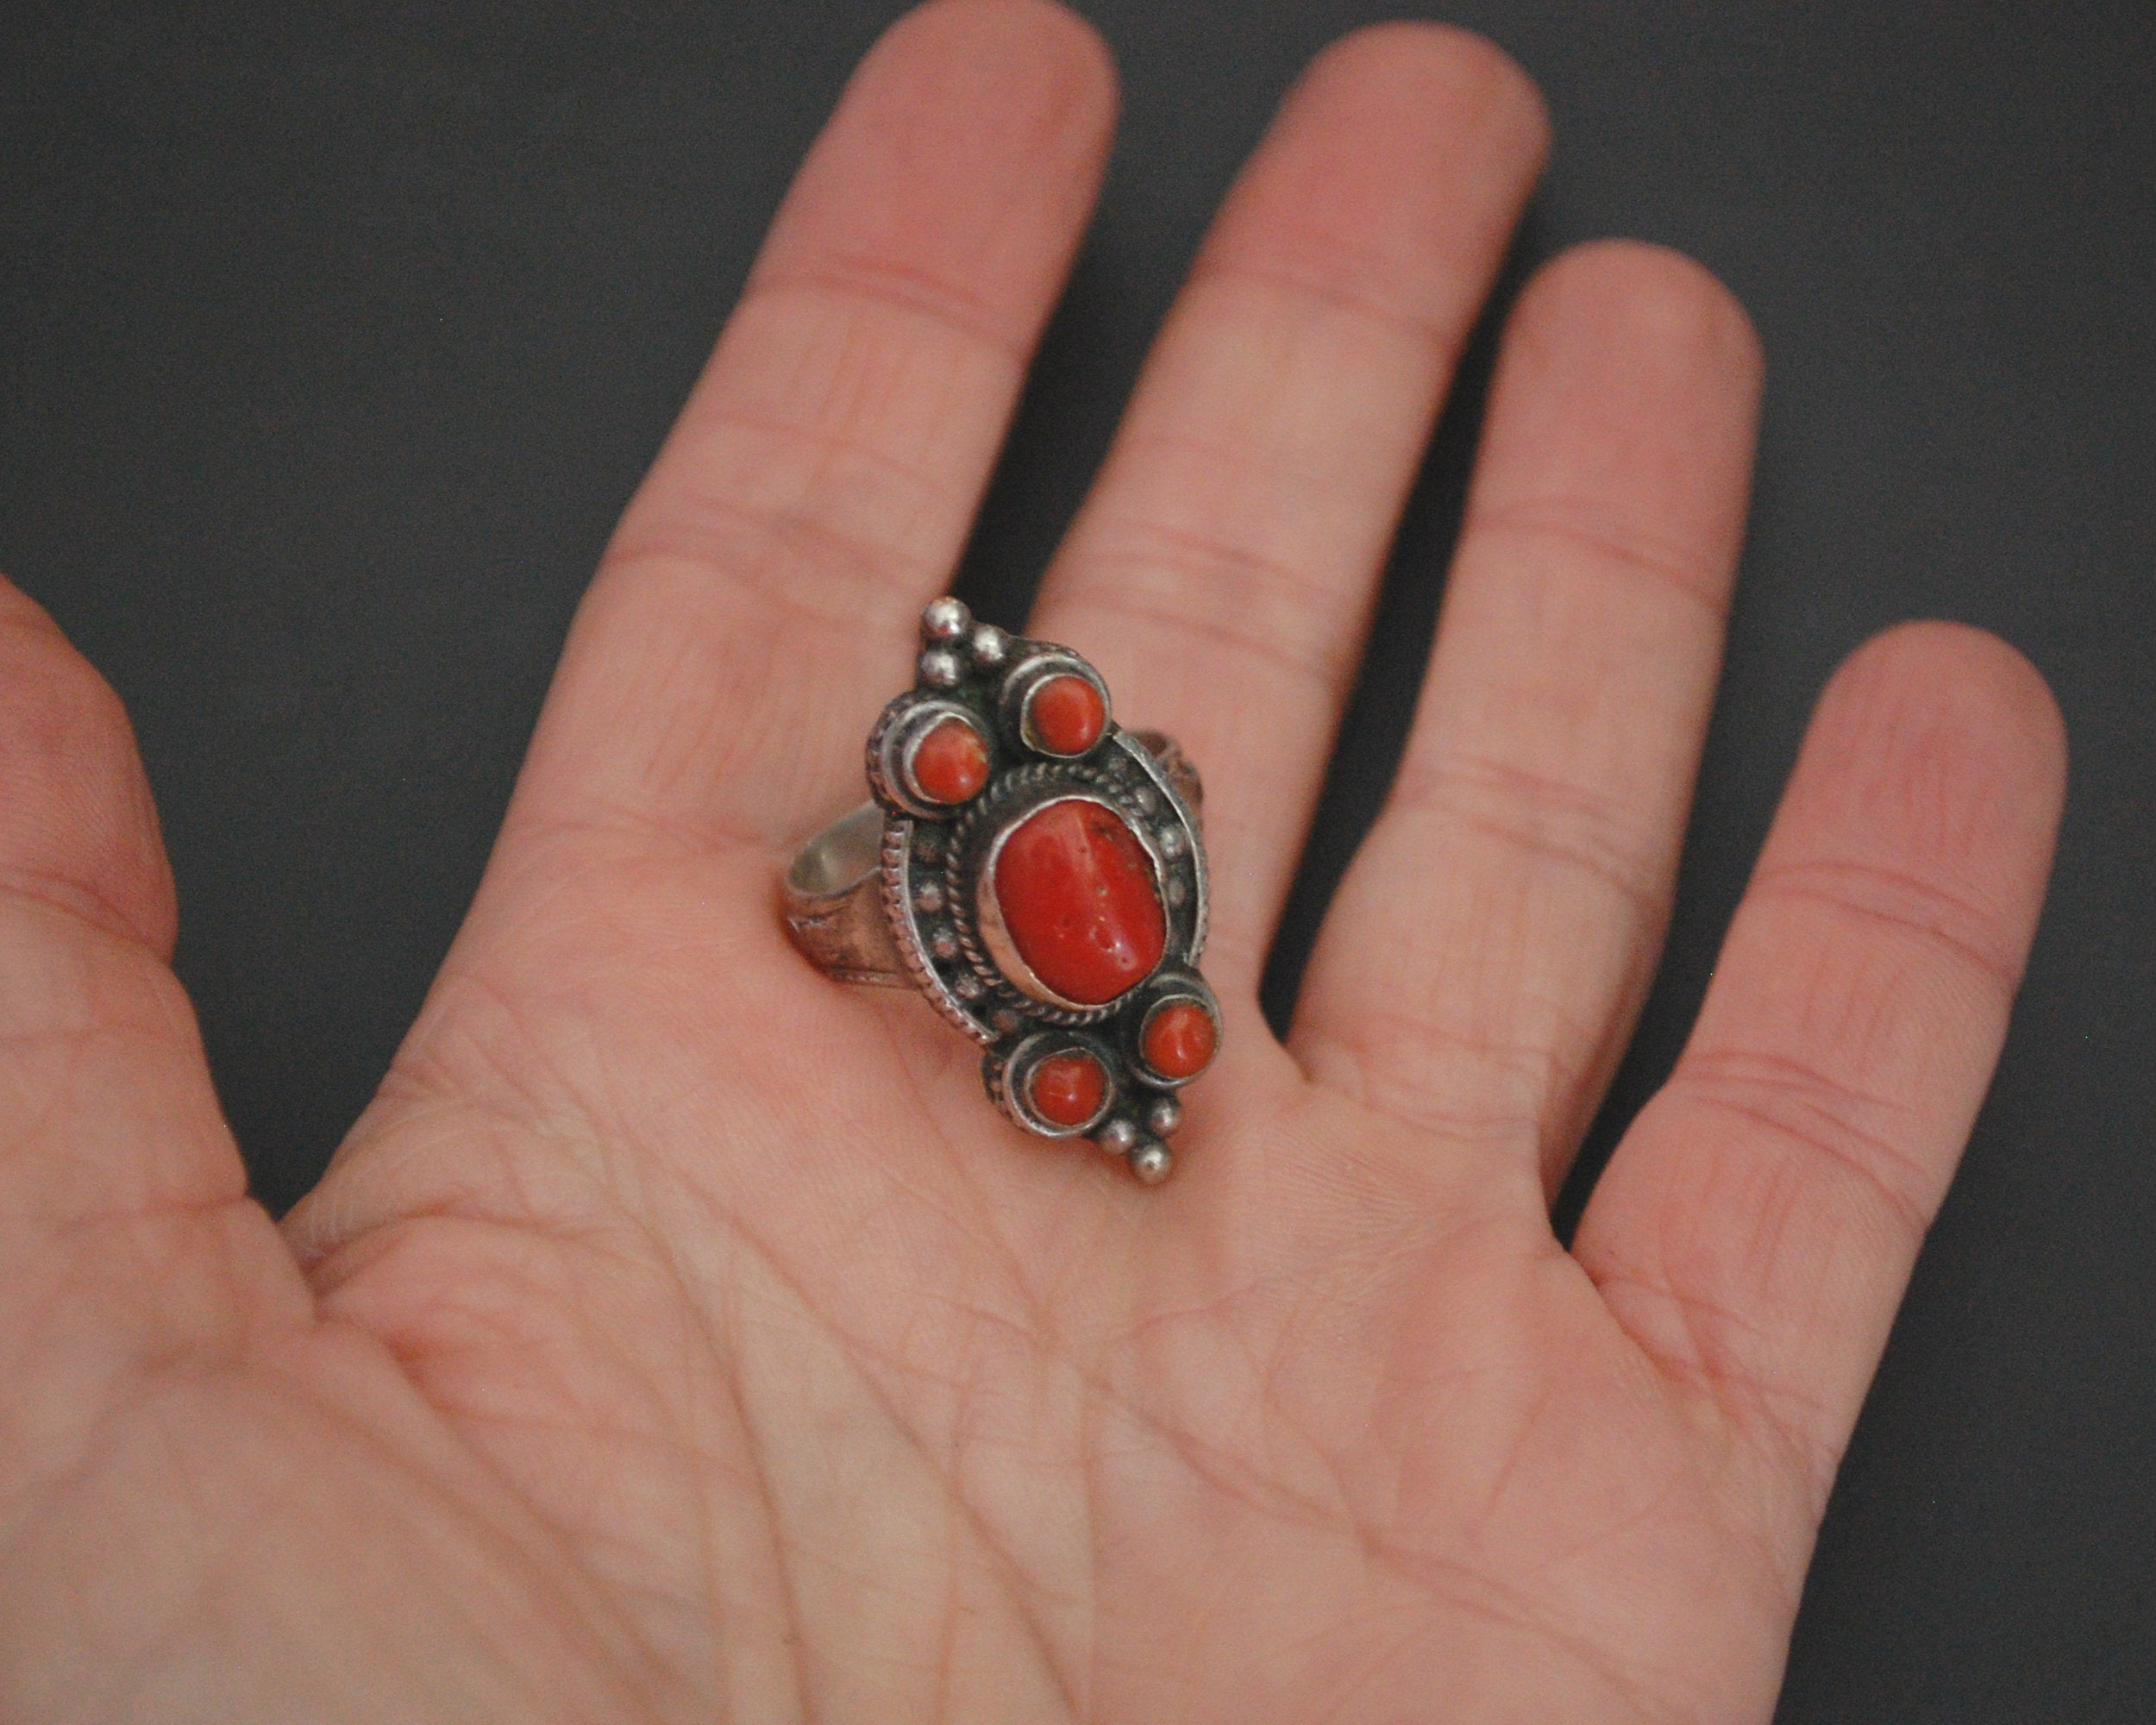 Vintage Nepali Coral Ring - Size 9.25